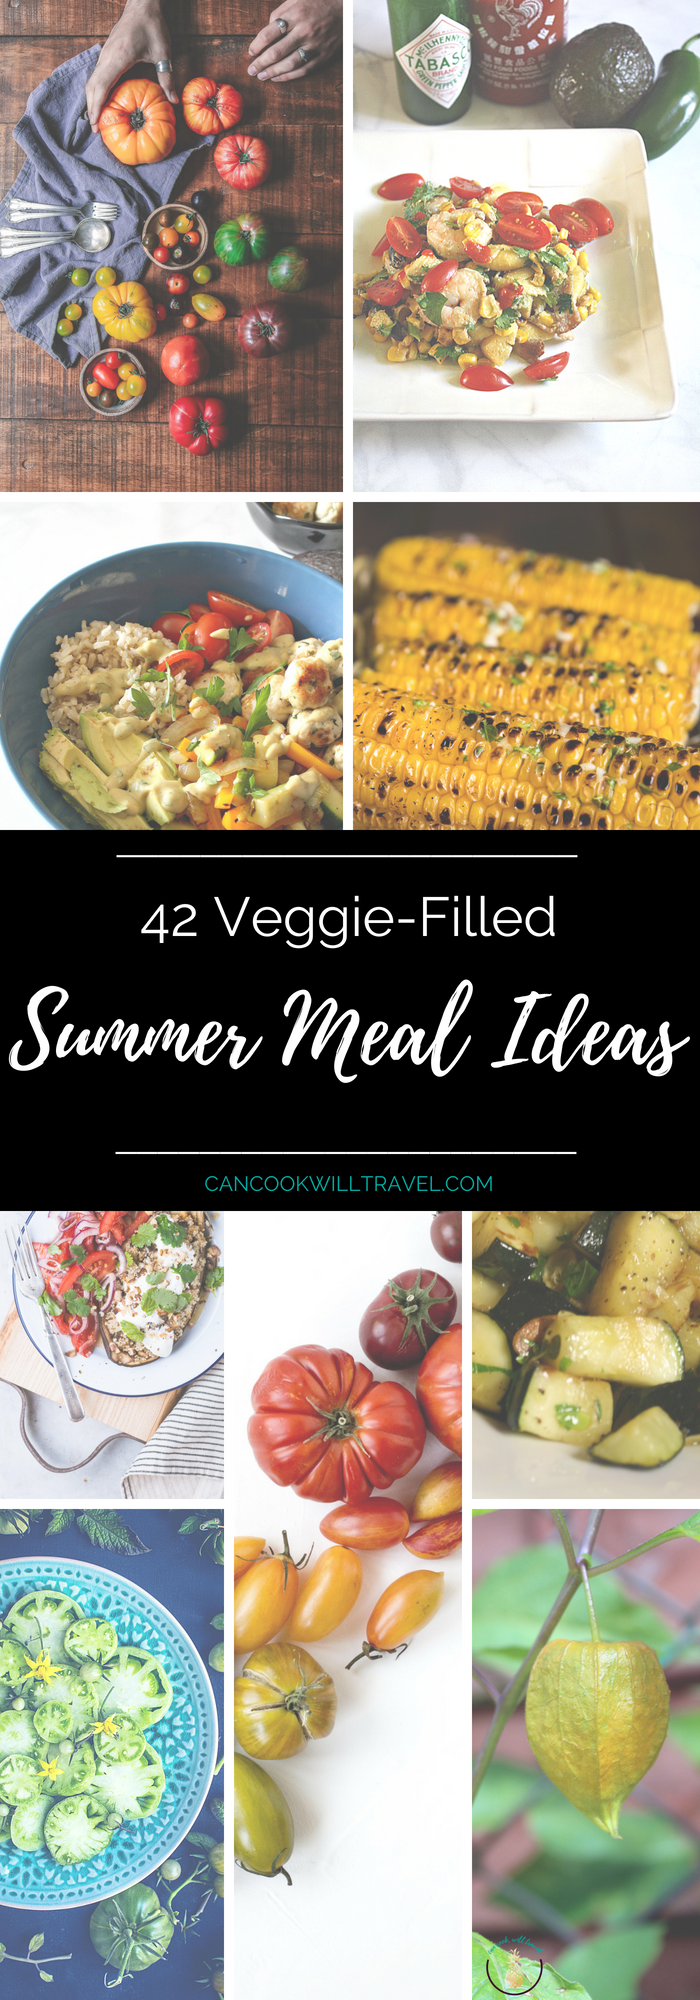 Summer Meal Ideas_Tall